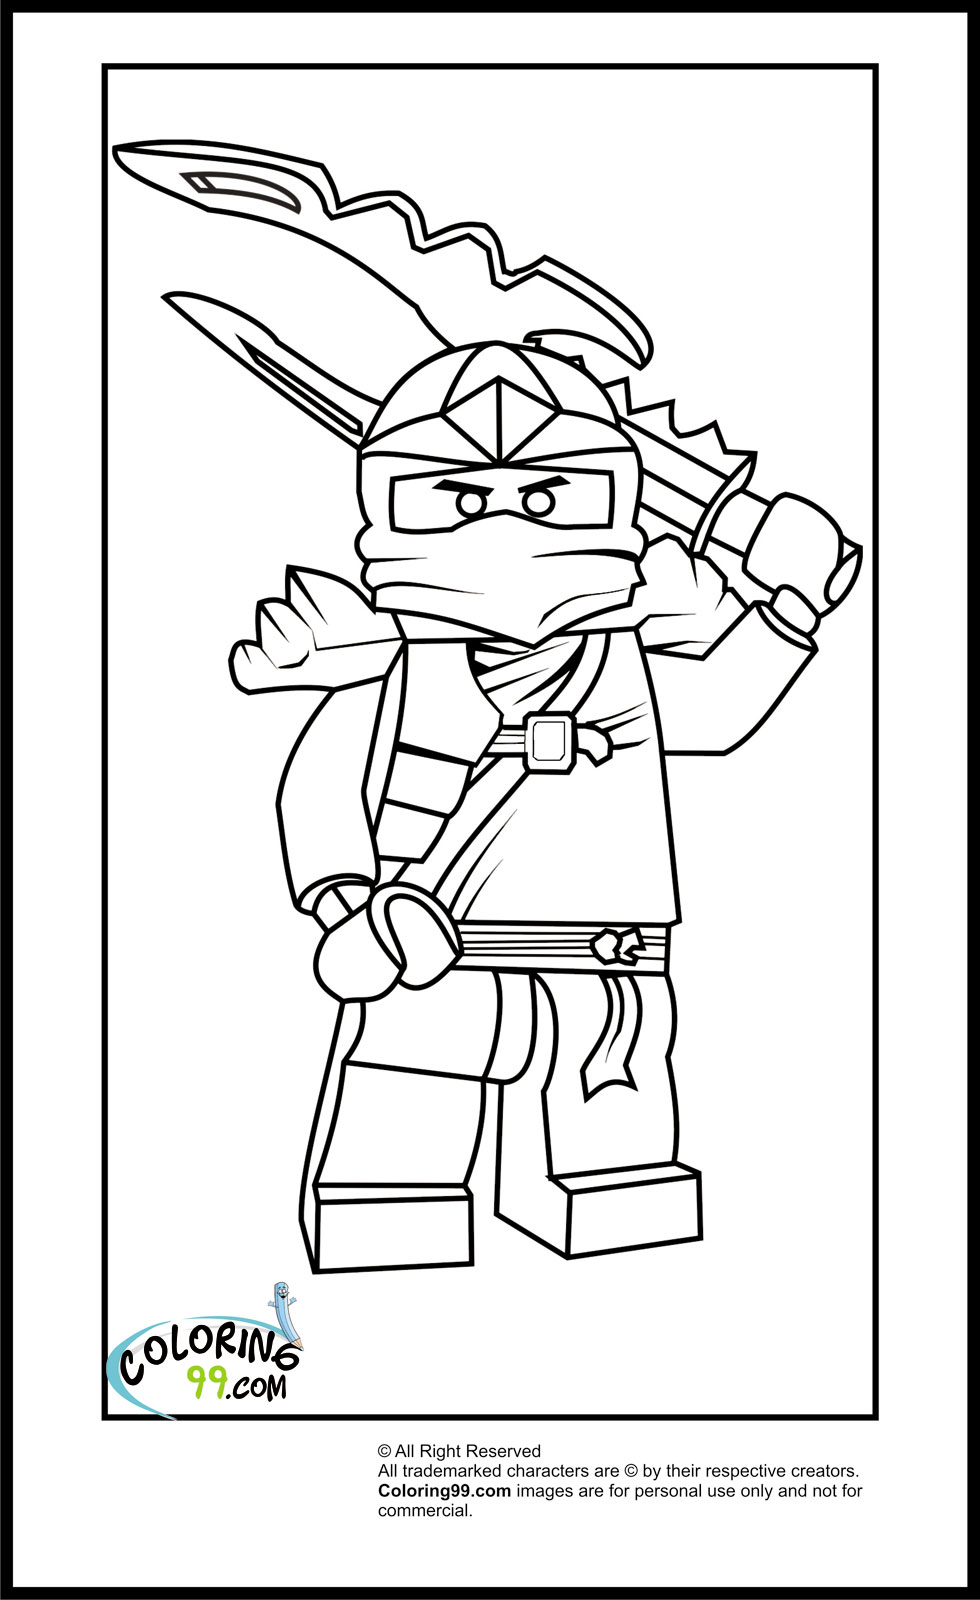 LEGO Ninjago Coloring Pages | Minister Coloring